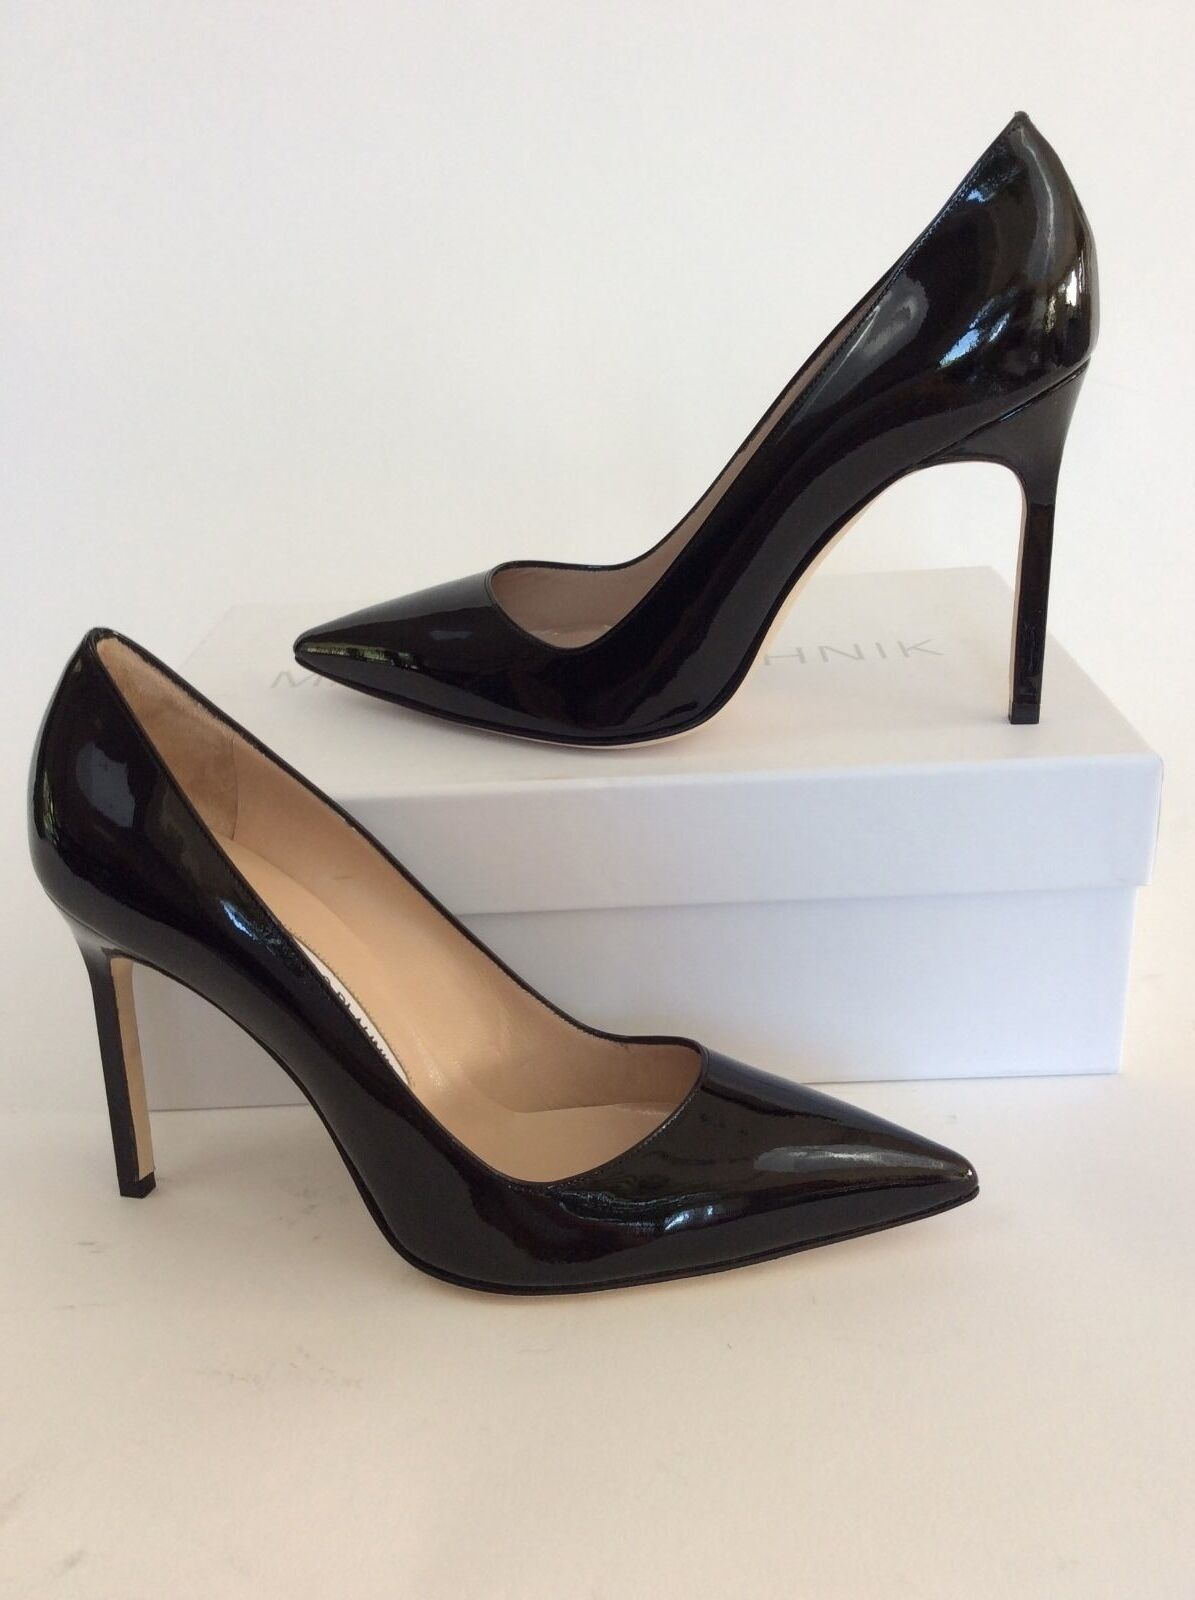 New Manolo Blahnik 'BB' Pointy Toe Patent Leather Pump Taille 38.0   8